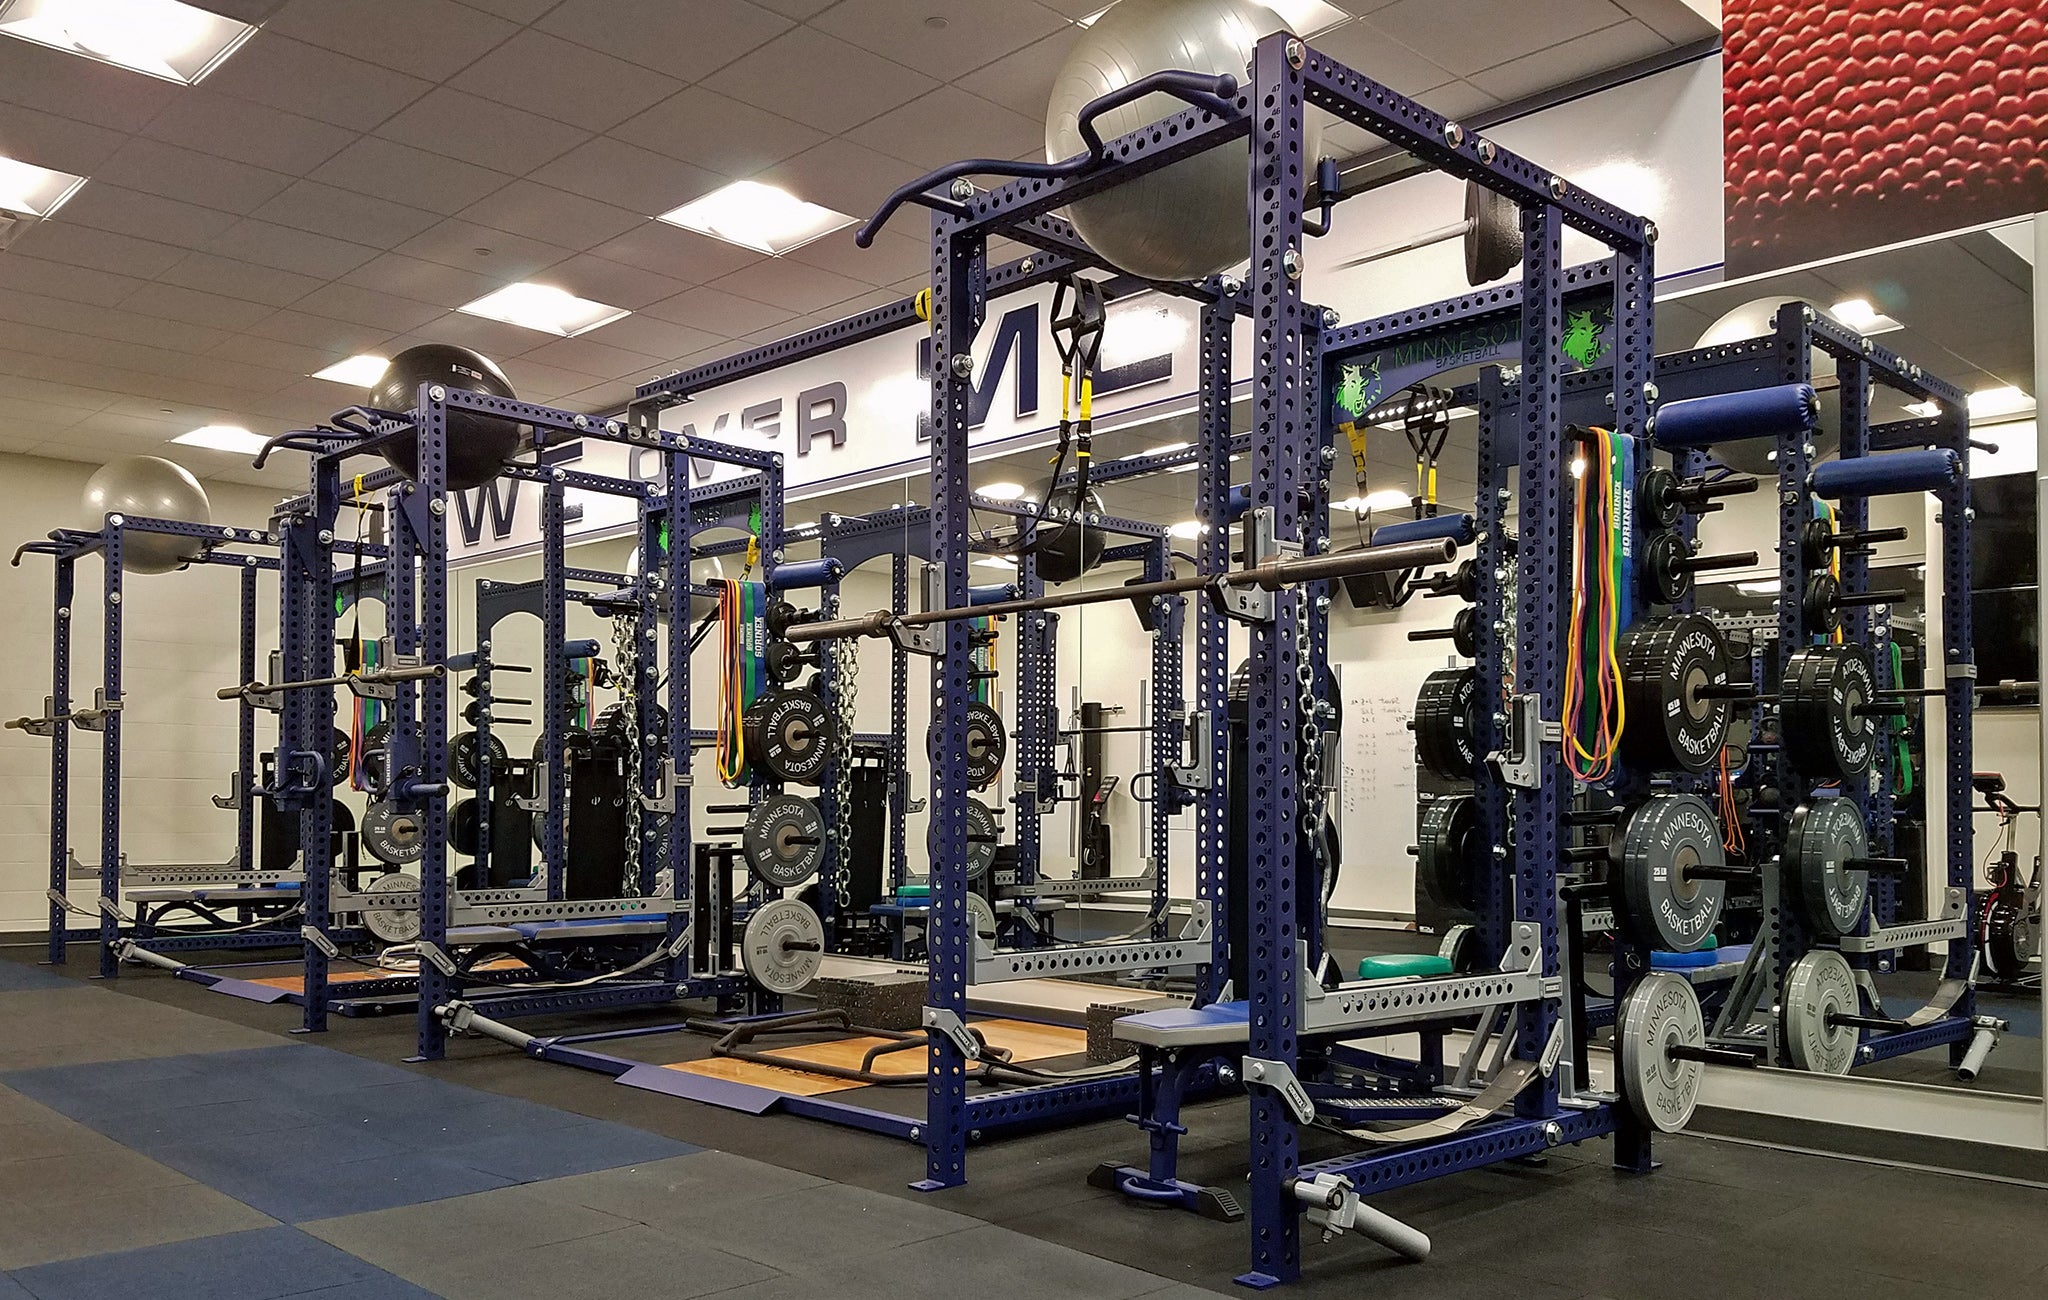 Minnesota Timberwolves Weight Room